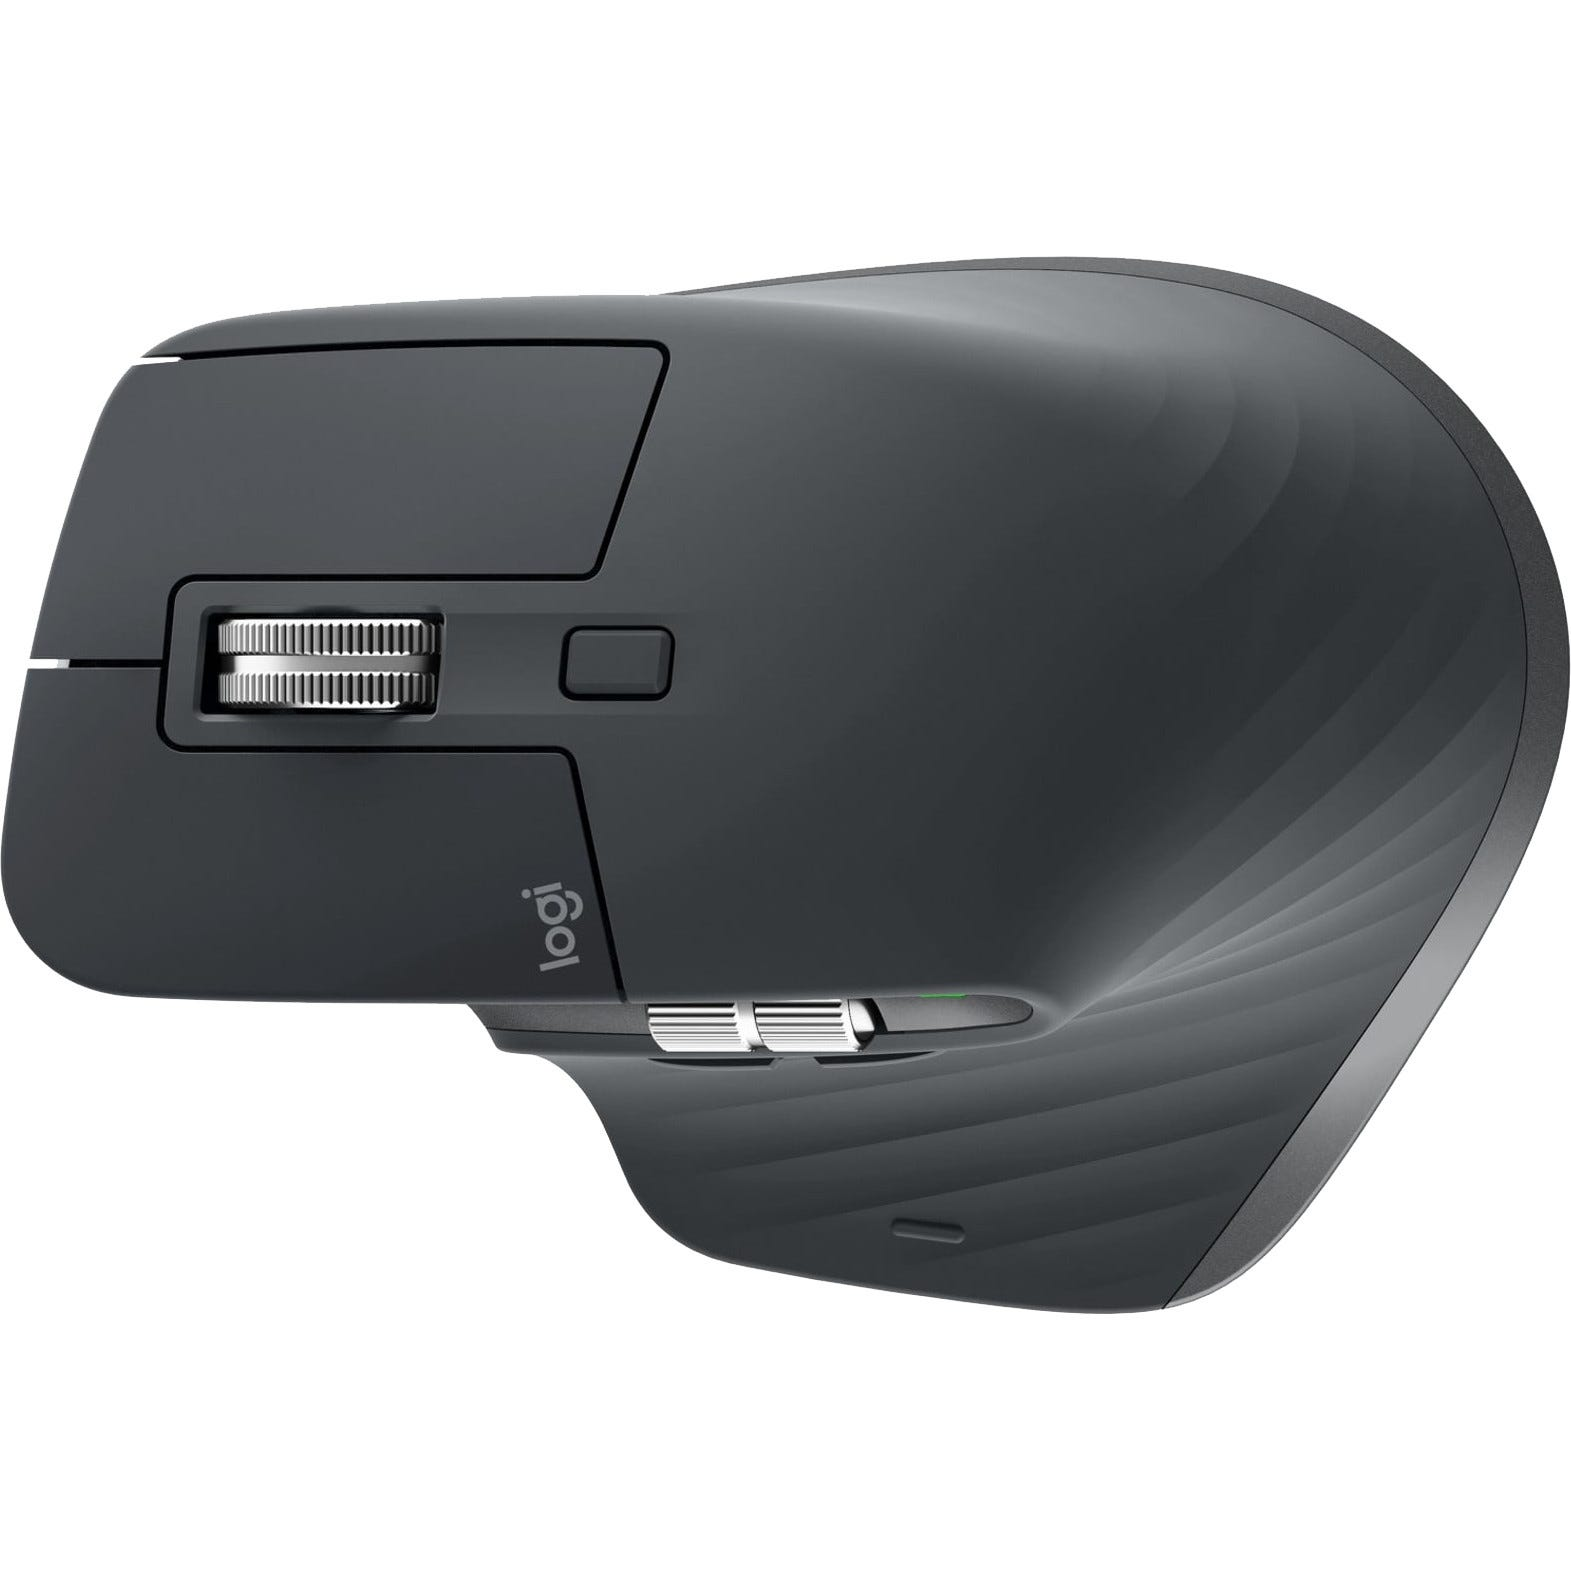 MX Master 3 Wireless Mouse